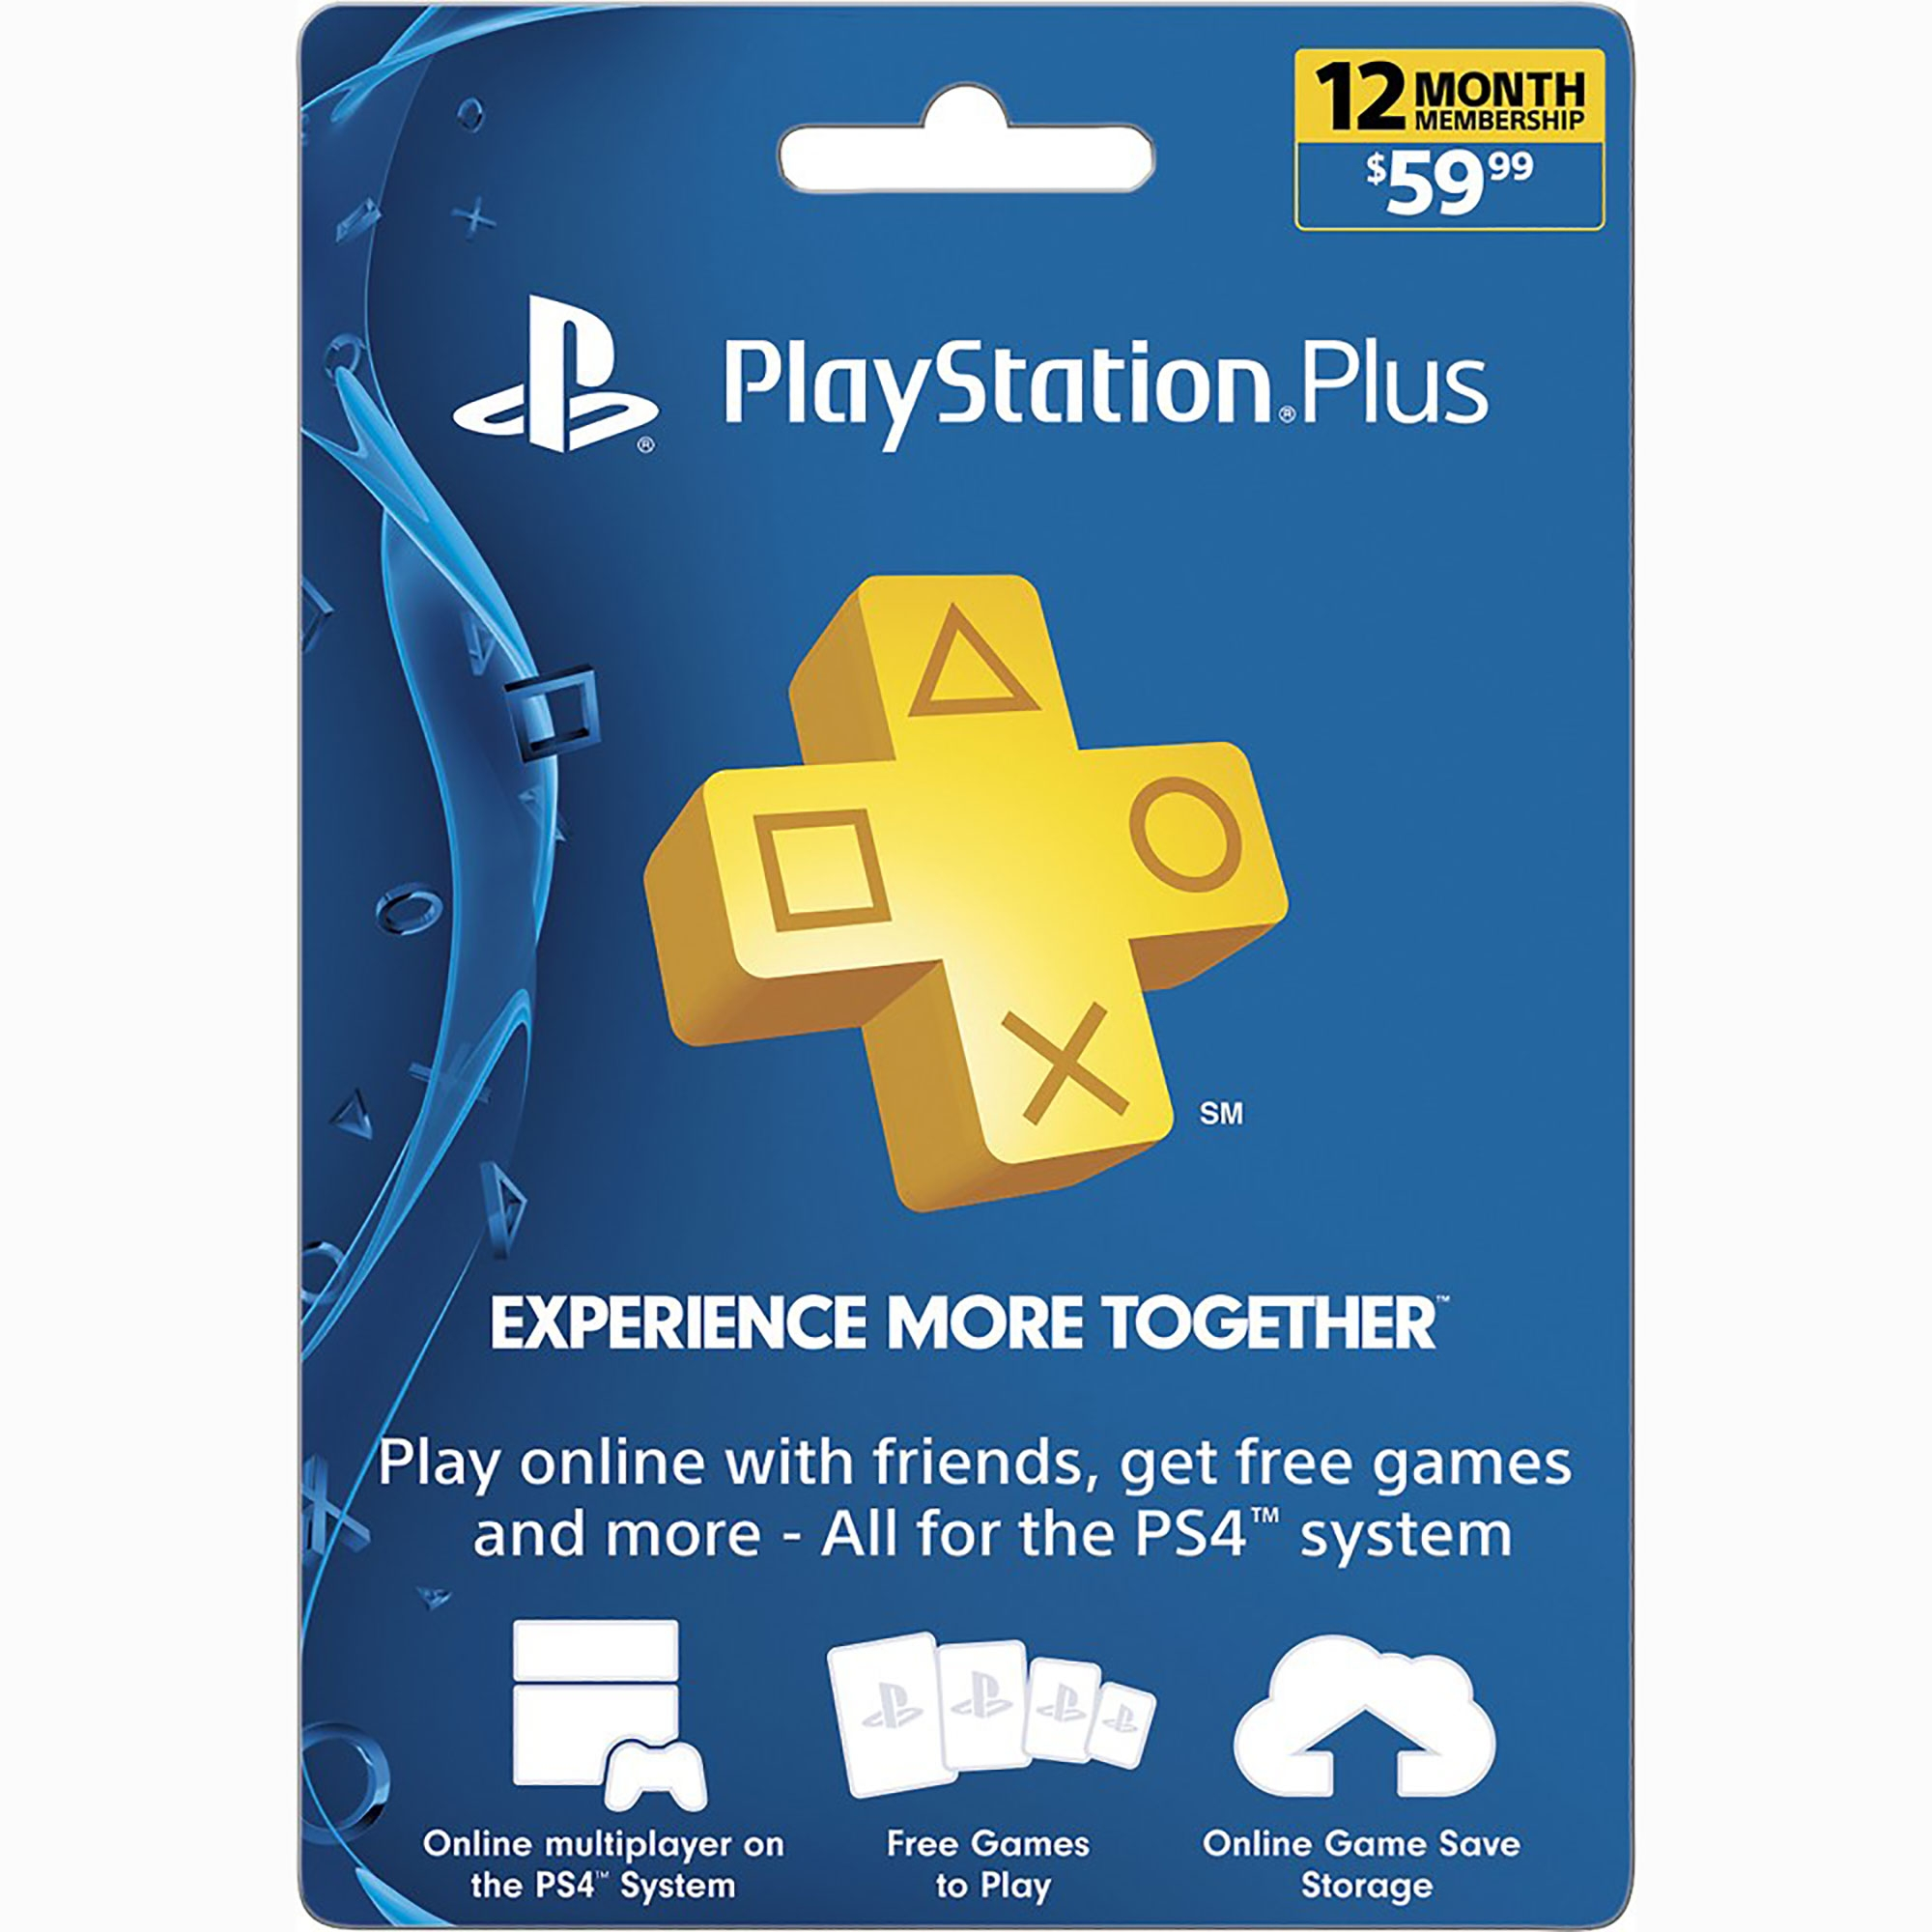 PS3 - PS4 - Subscription Card - PSN Live - 12 Month Membership -  PS3/PS4/PSvita Compatible (Sony)